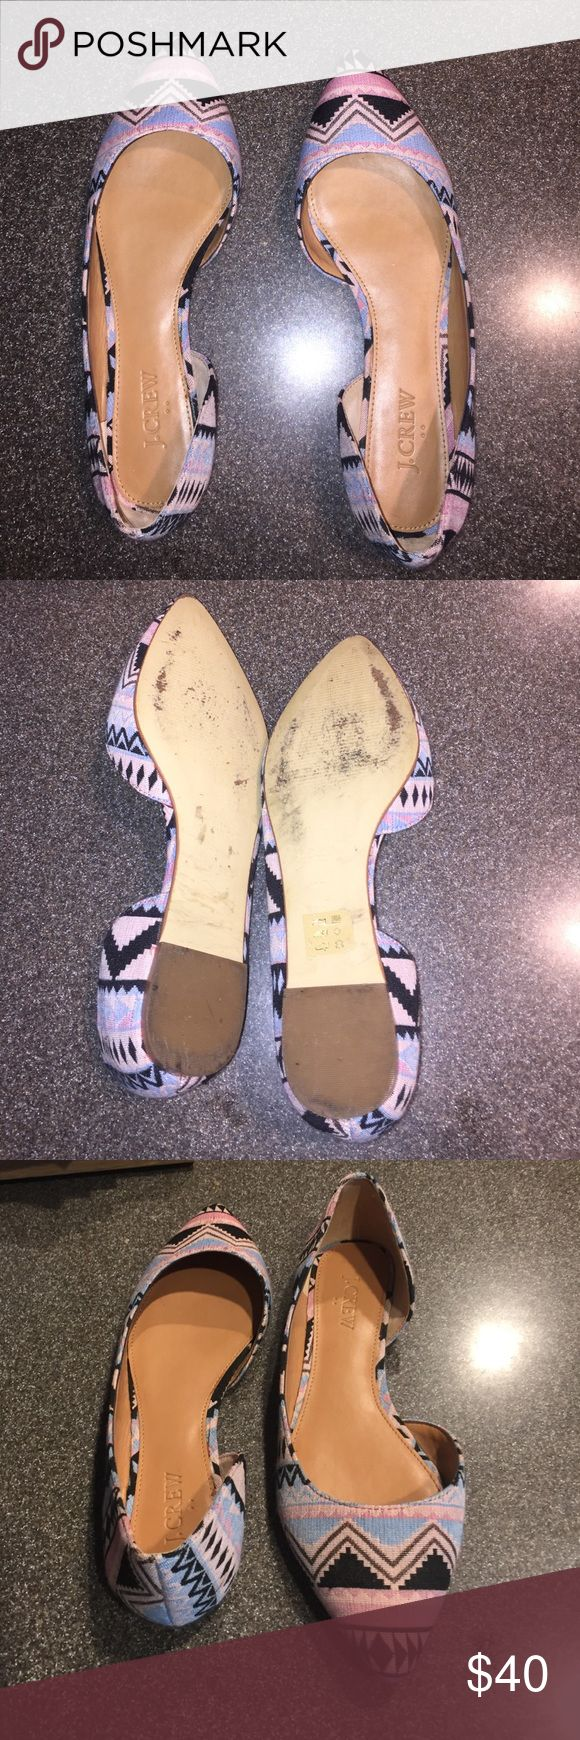 j.crew Aztec  flats size 8 Excellent used condition size 8- too small for me :( gave me blisters only wore 1-2 times love the tribal pattern J. Crew Shoes Sandals